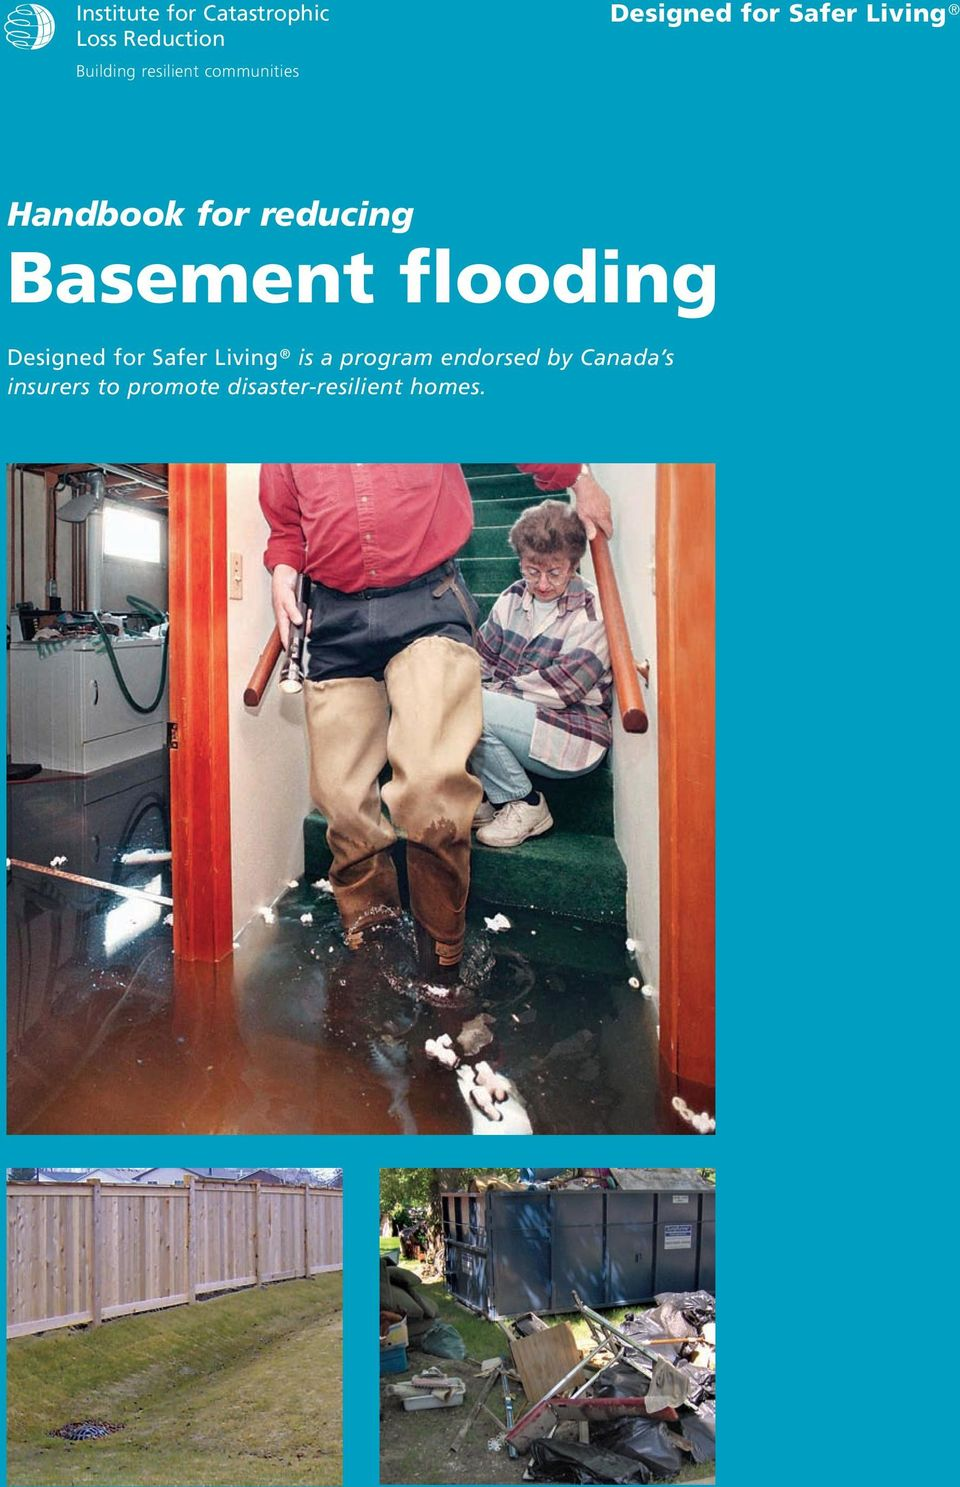 Basement flooding Designed for Safer Living is a program